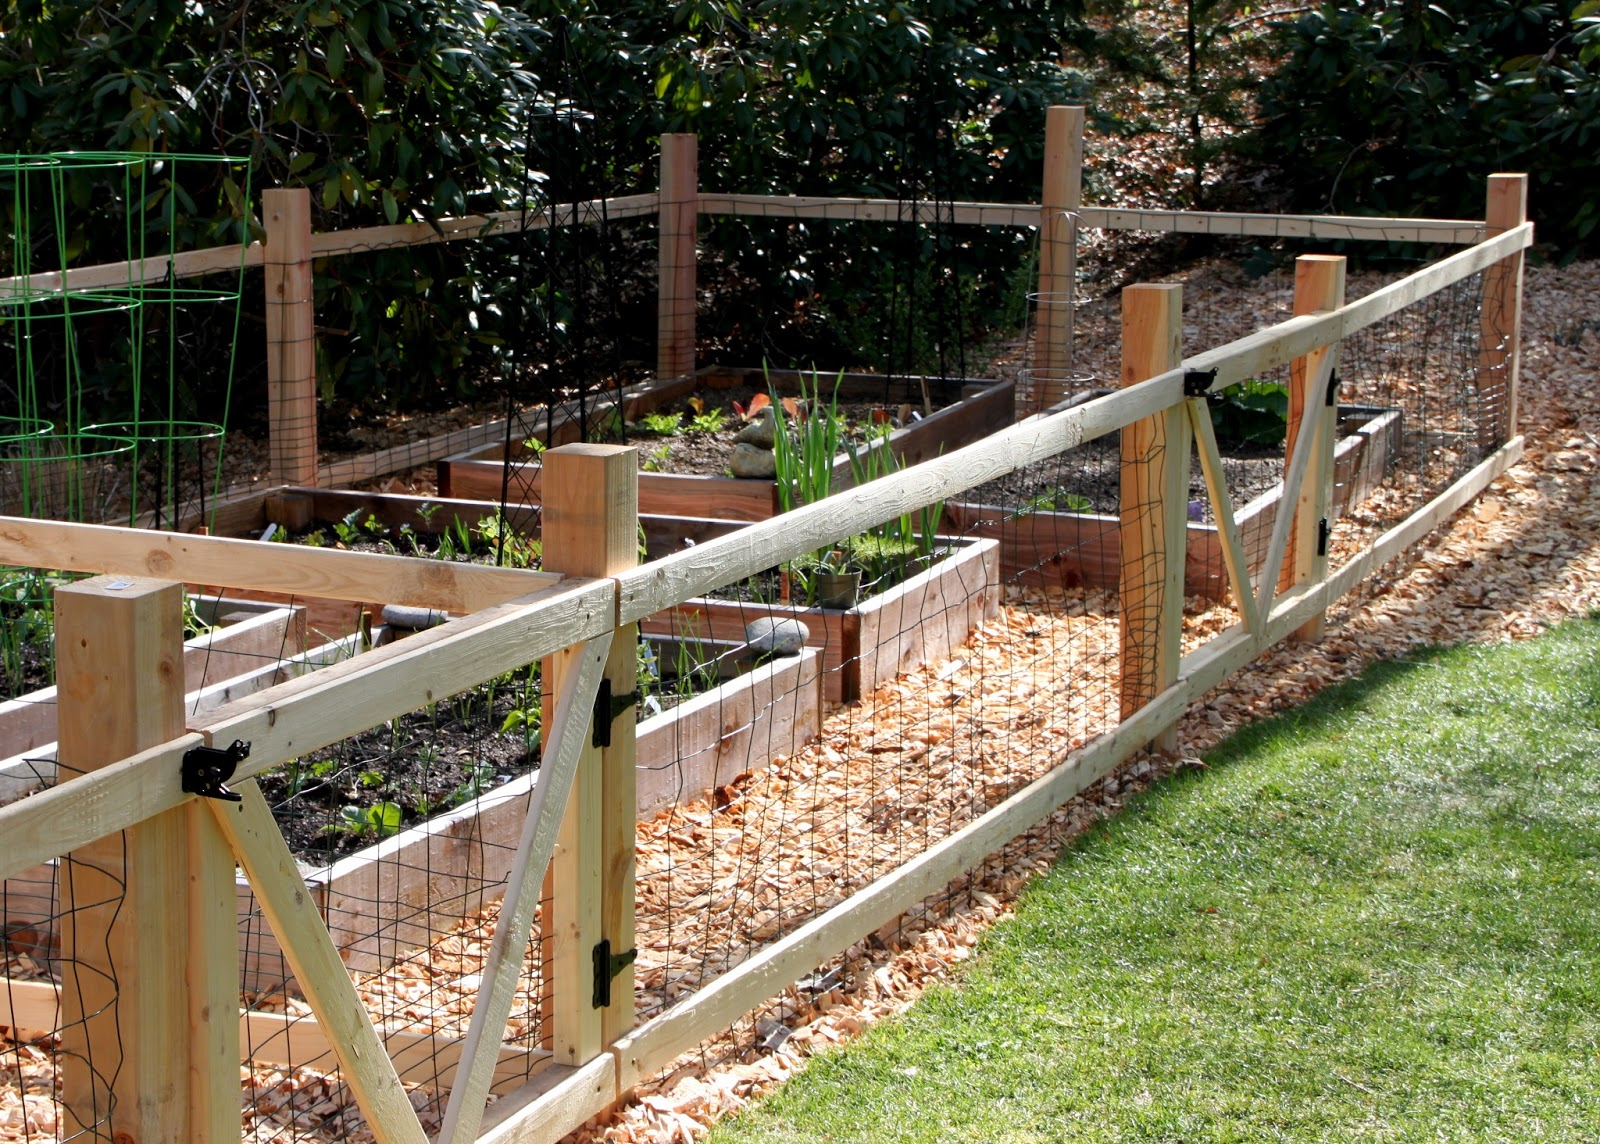 Simple Garden Fence Ideas green lawn small garden simple fences ideas A Simple Garden Fence